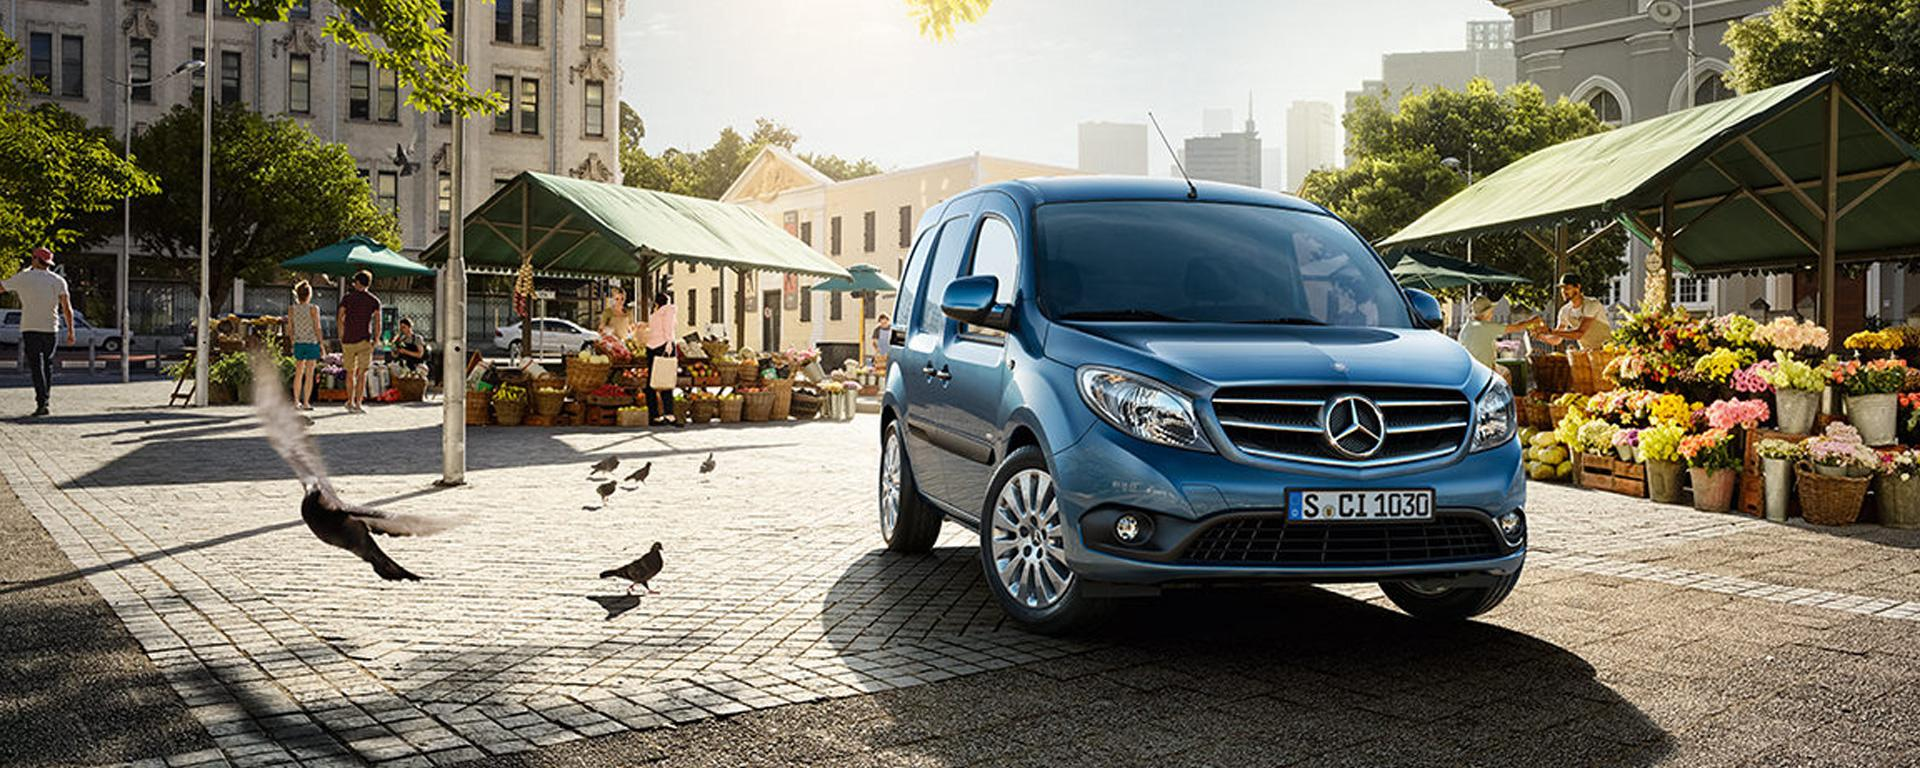 Mercedes-Benz Citan leasen